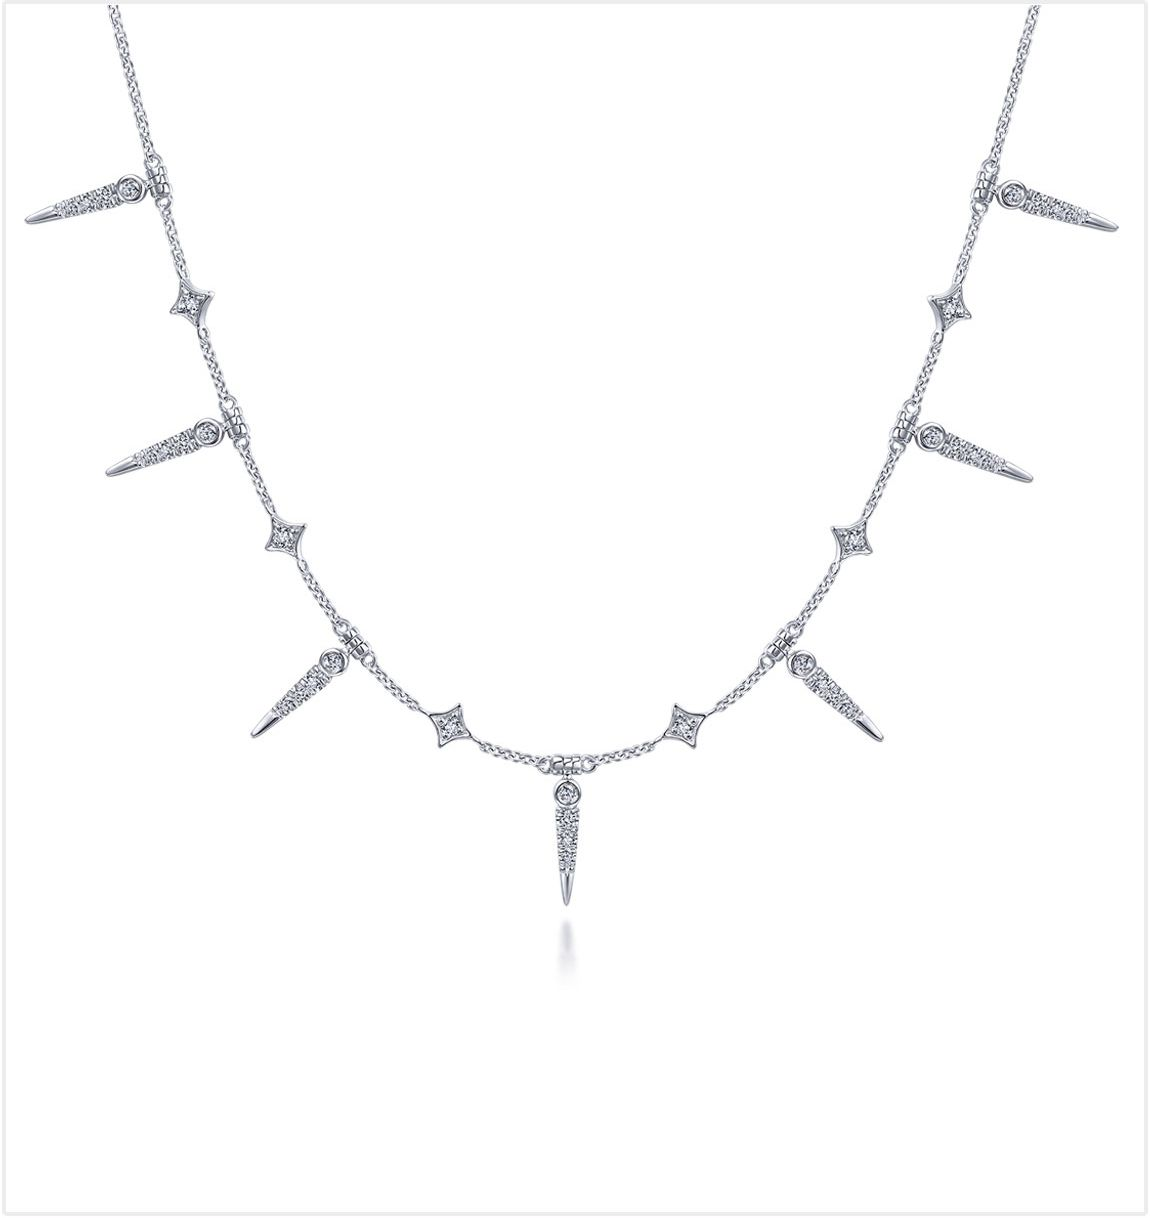 White Gold Alternating Diamond Spike Fashion Necklace